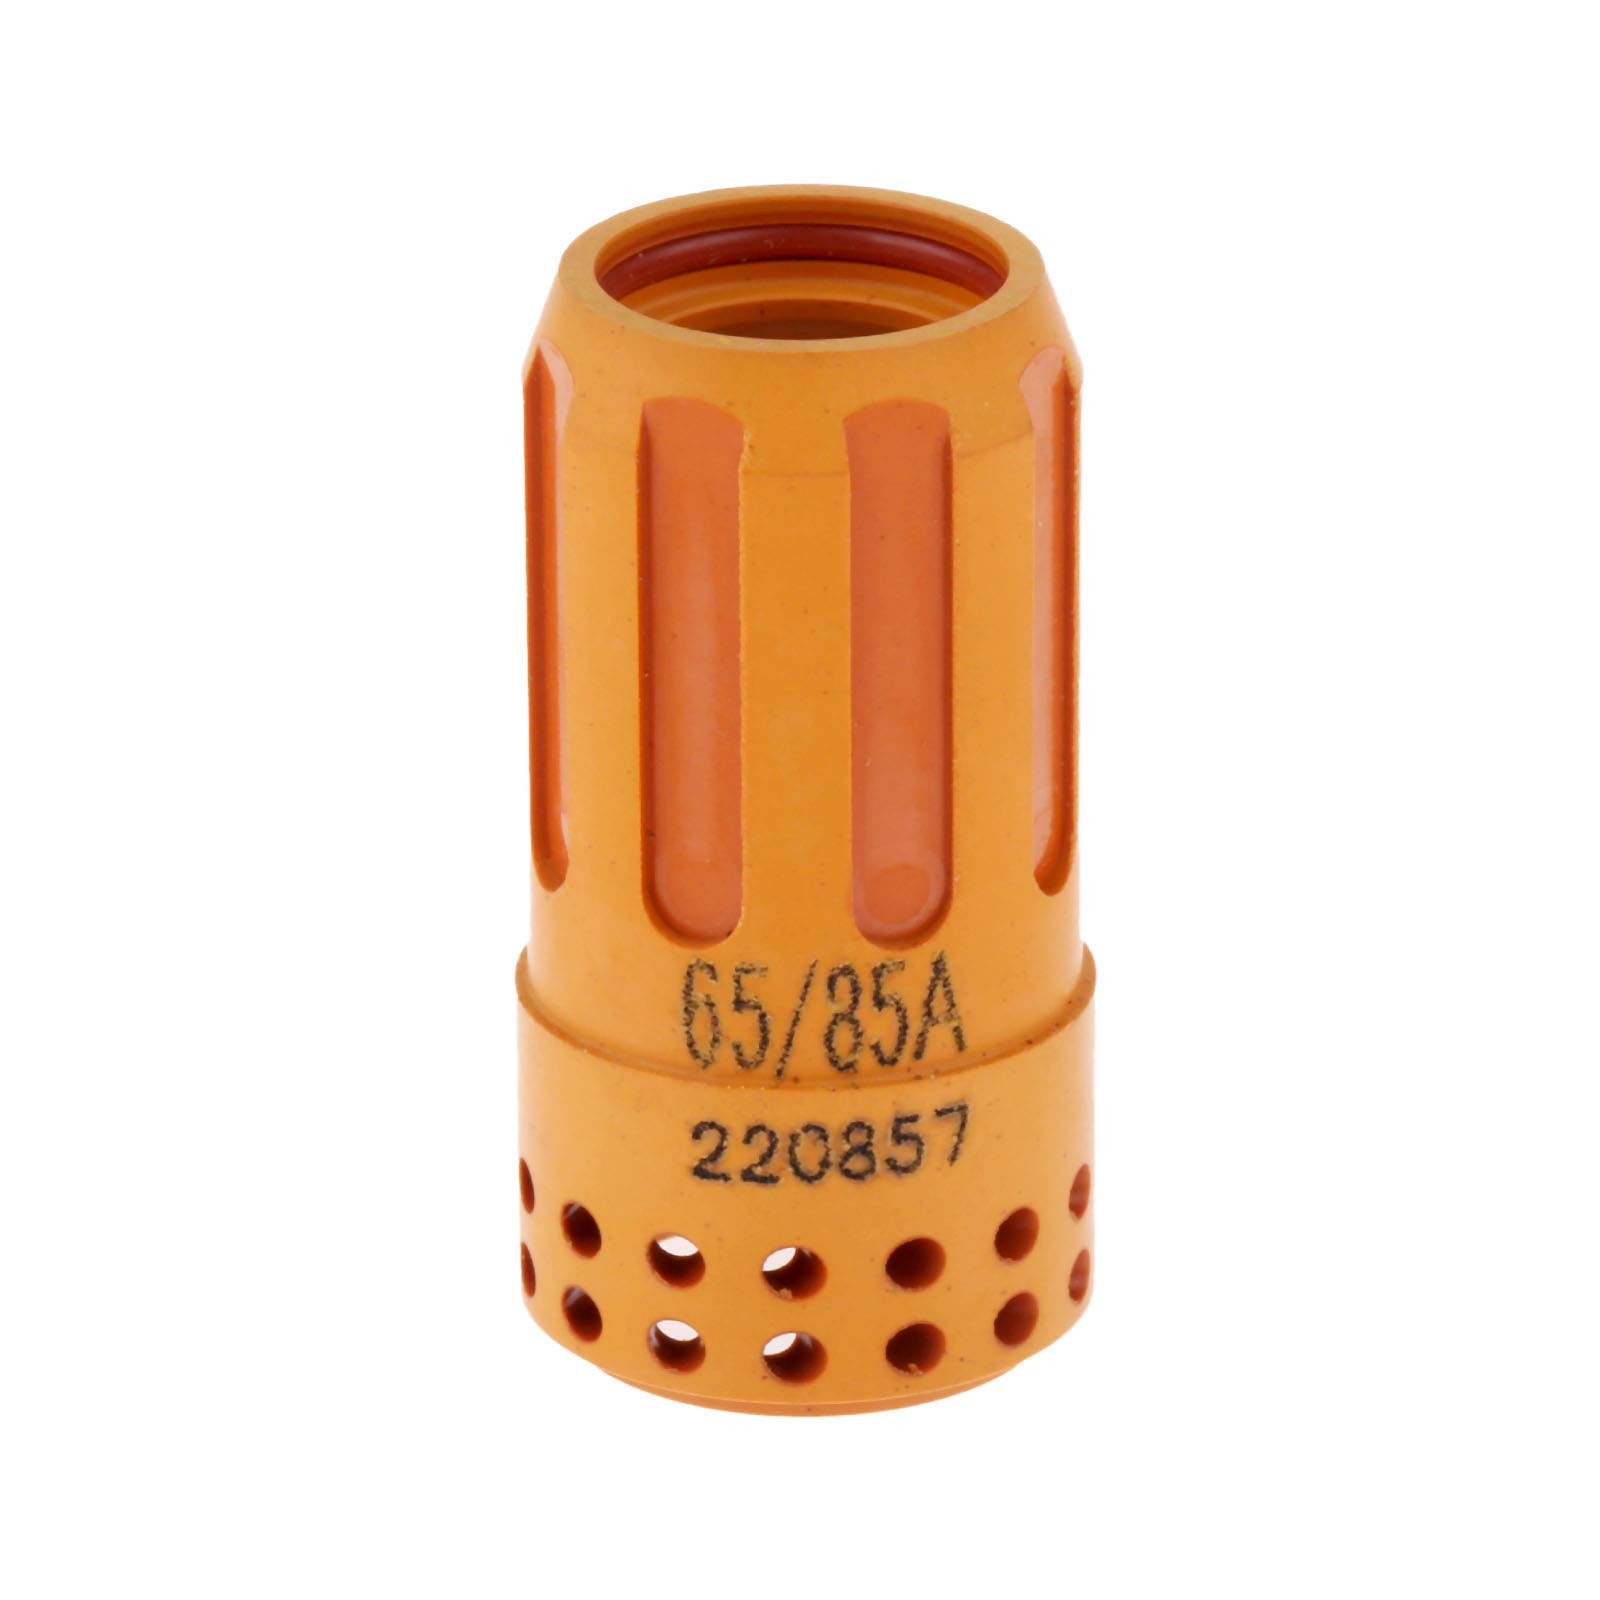 1Pc Retaining Cap 220854 for Power max 65 85 105 HRT MRT 65A-105A All Processes Mtsooning